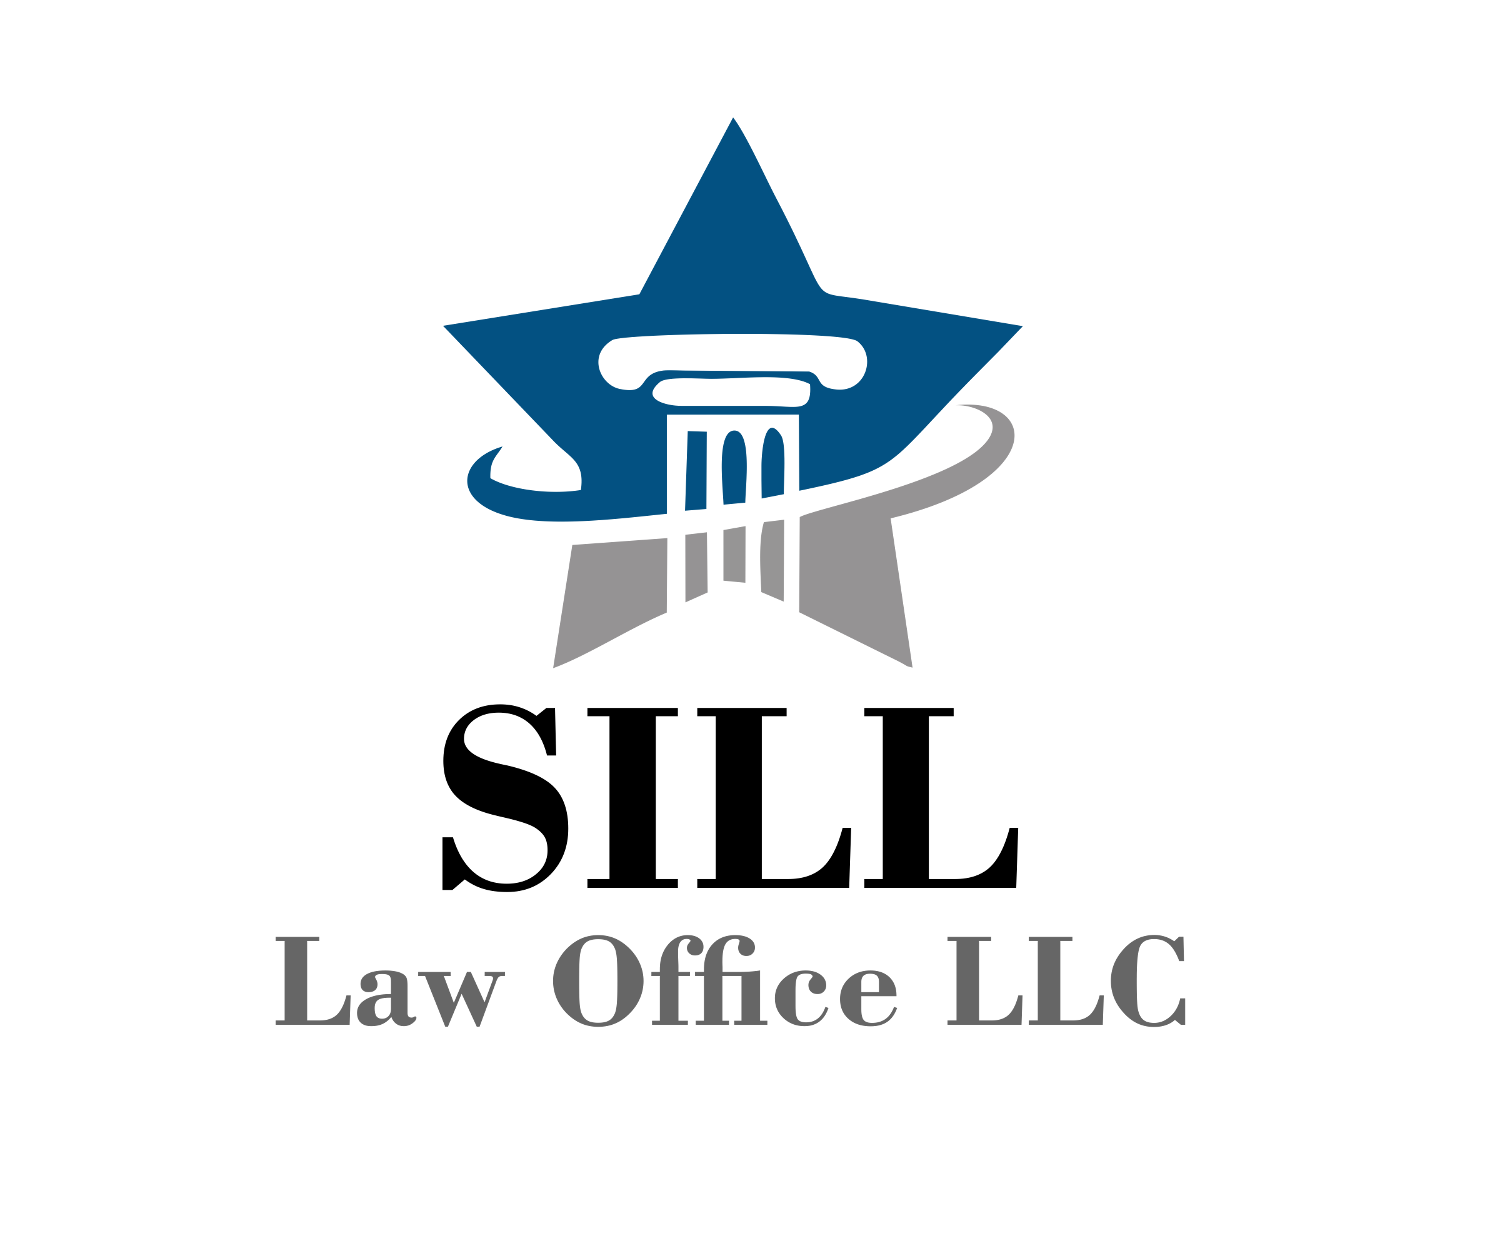 Sill Law Office LLC